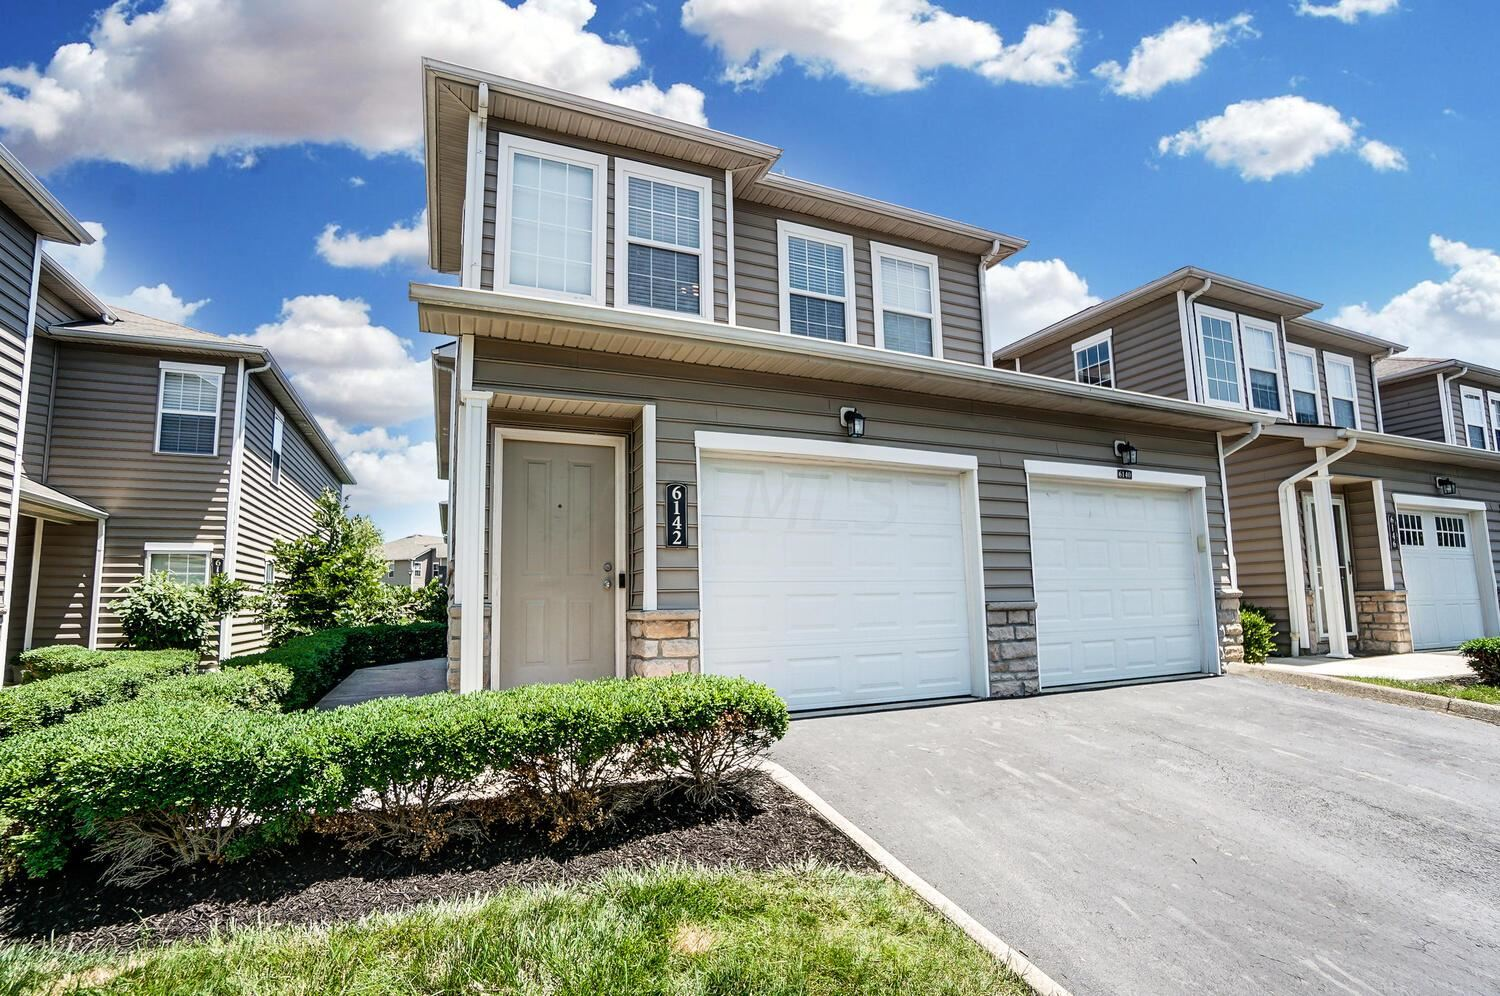 Photo of 6142 Sowerby Lane, Westerville, OH 43081 (MLS # 221021877)